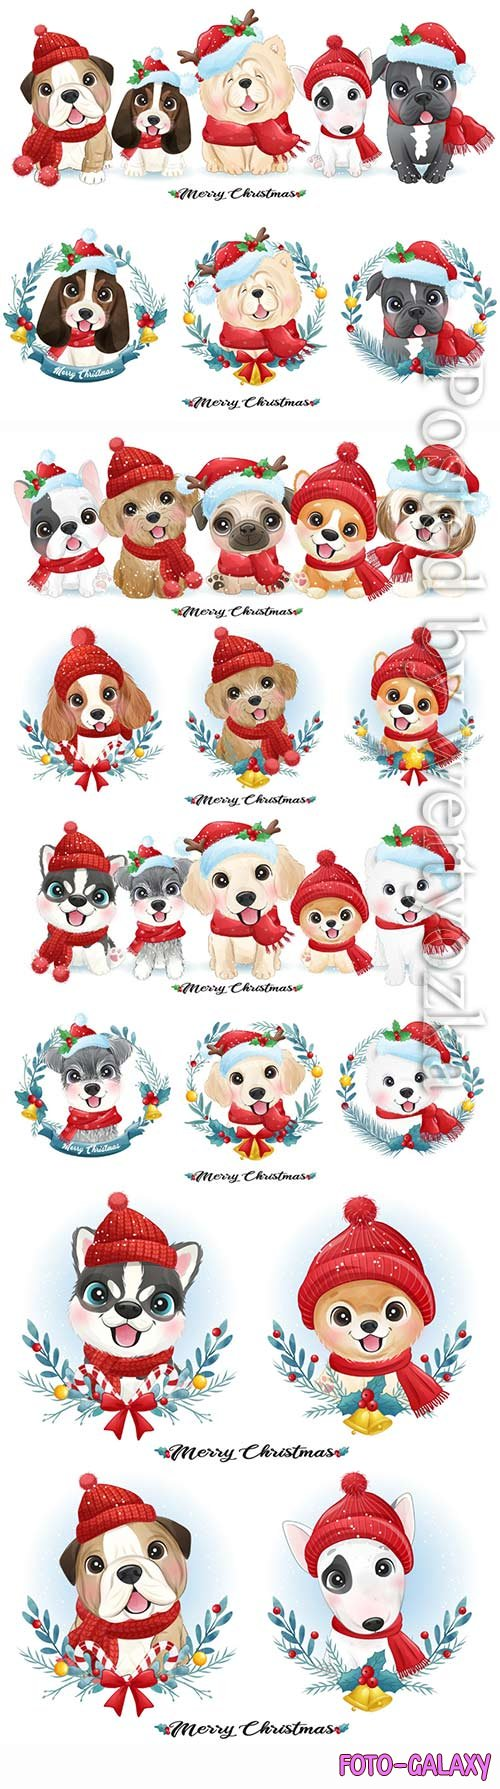 Cute doodle puppy for christmas with watercolor vector illustration